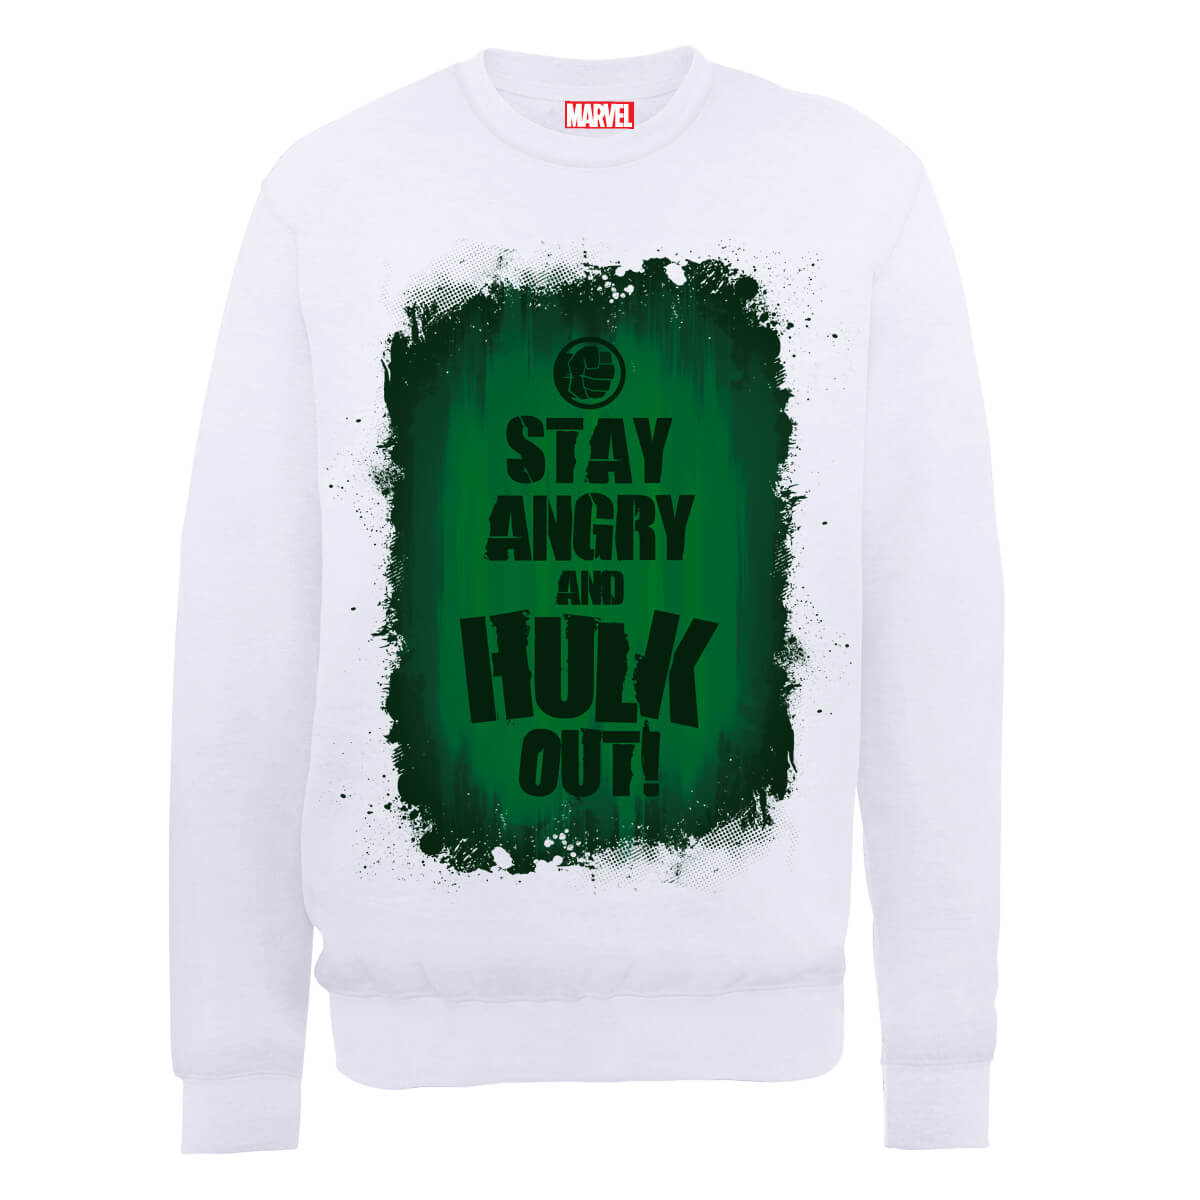 Marvel Avengers Assemble Hulk Stay Angry Sweatshirt - White